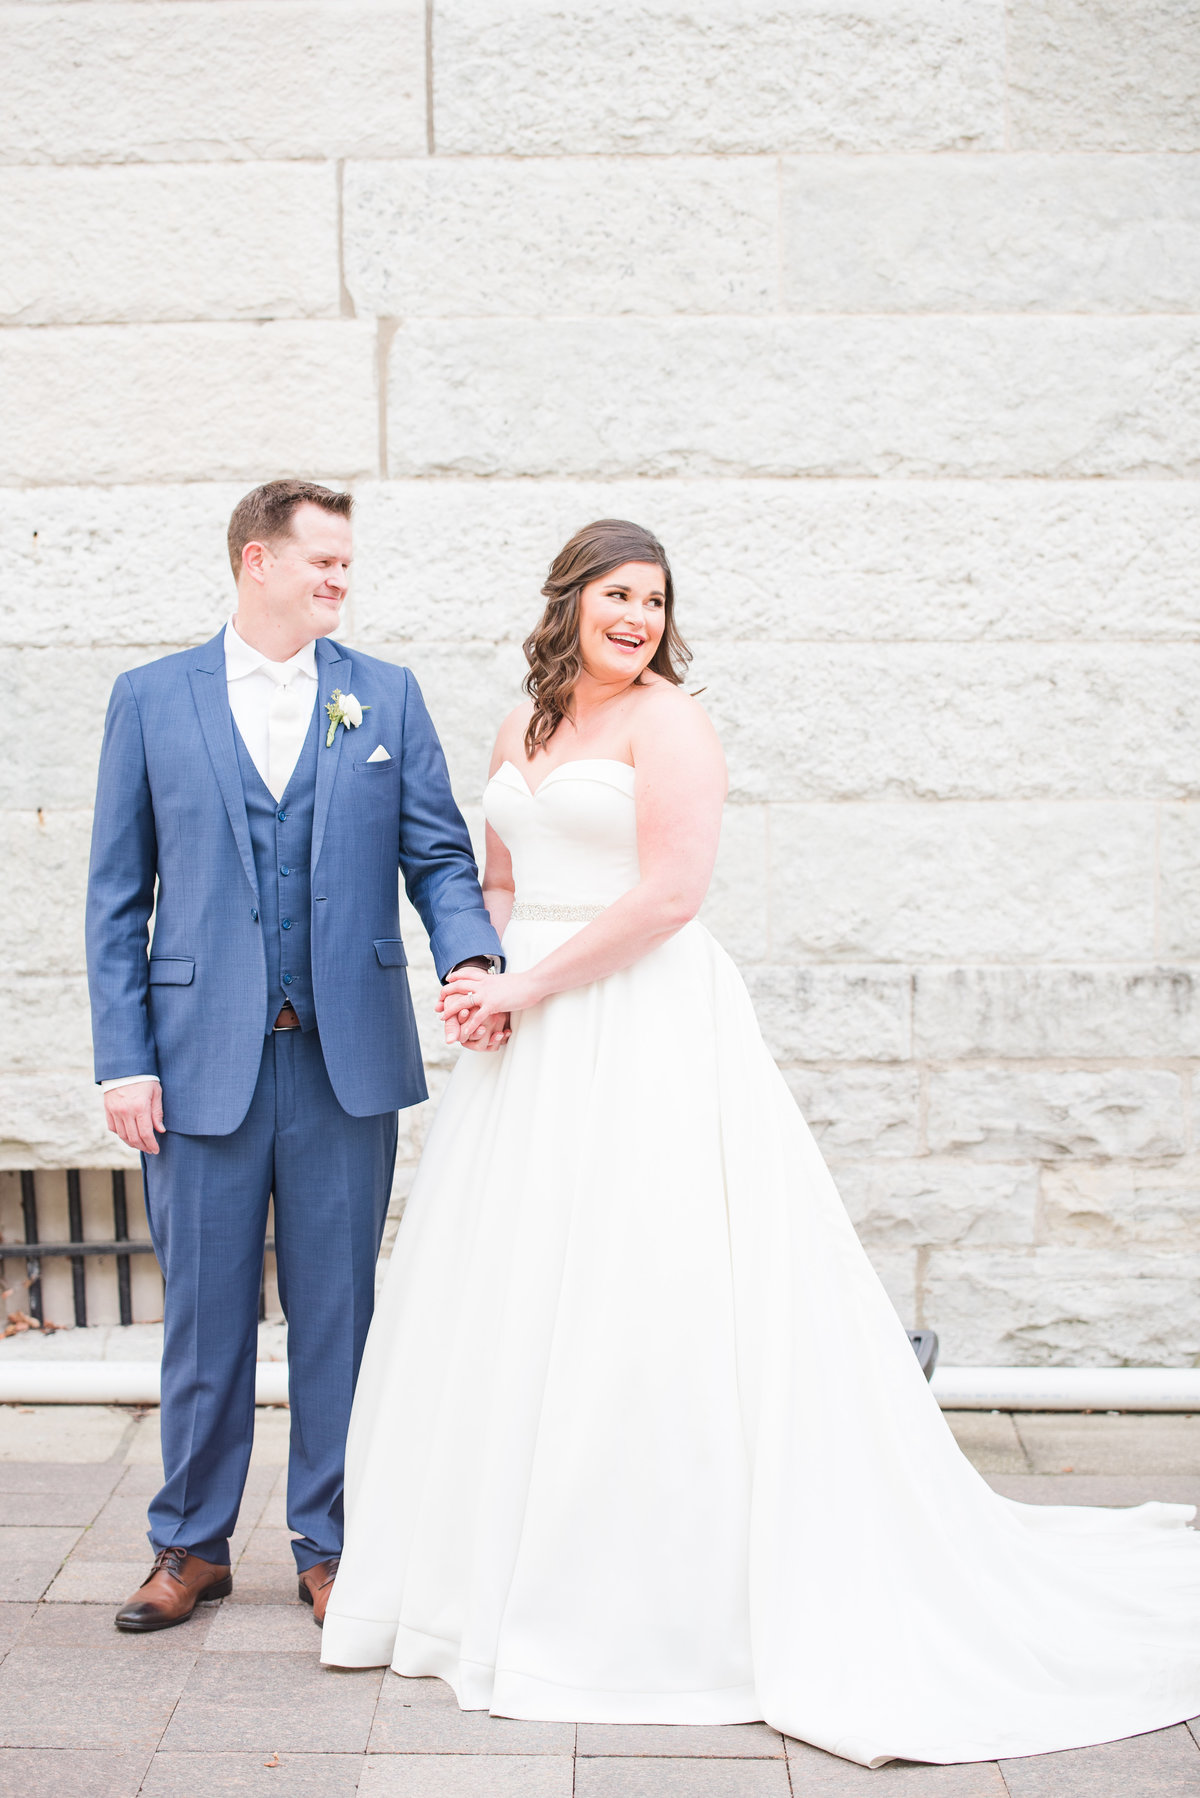 Newlywed Portraits Cait Potter Creative LLC Milltop Potters Bridge Noblesville Square Courthouse Wedding-28